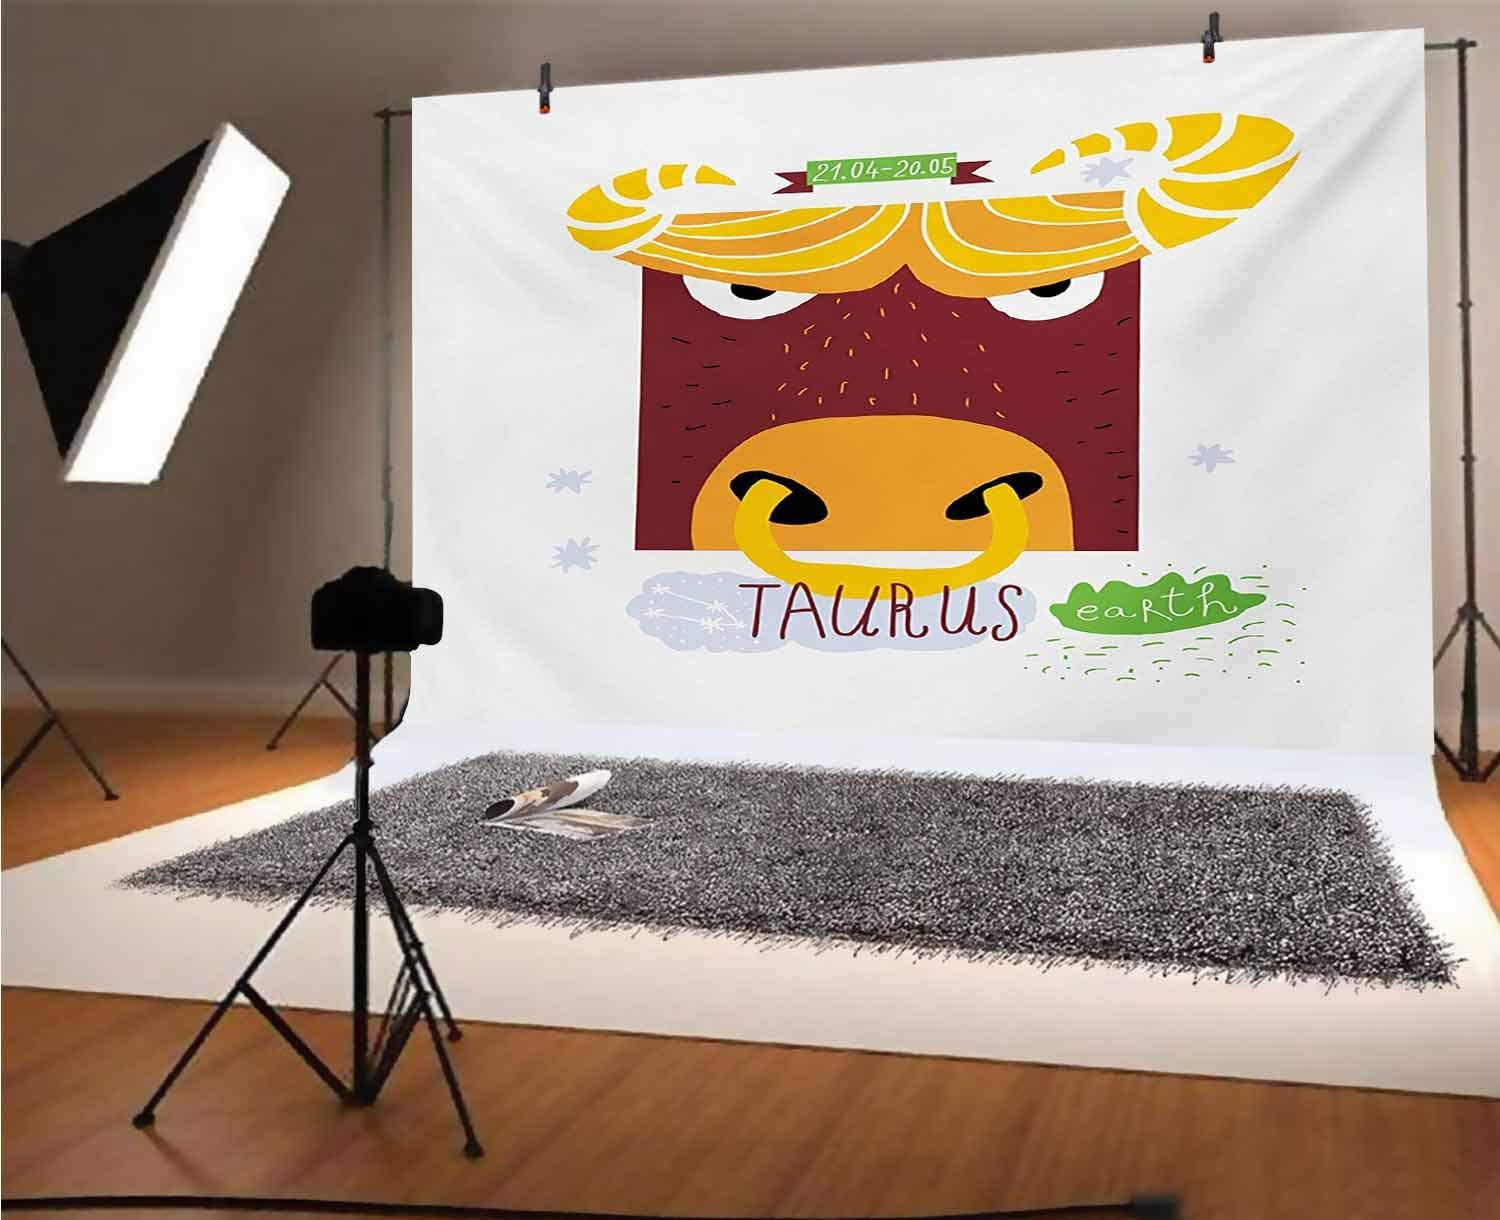 Zodiac Taurus 20x10 FT Vinyl Photography Backdrop,Cartoon Character Angry Bull Childish Hand Drawn Style Earth Sign and Dates Background for Photo Backdrop Baby Newborn Photo Studio Props